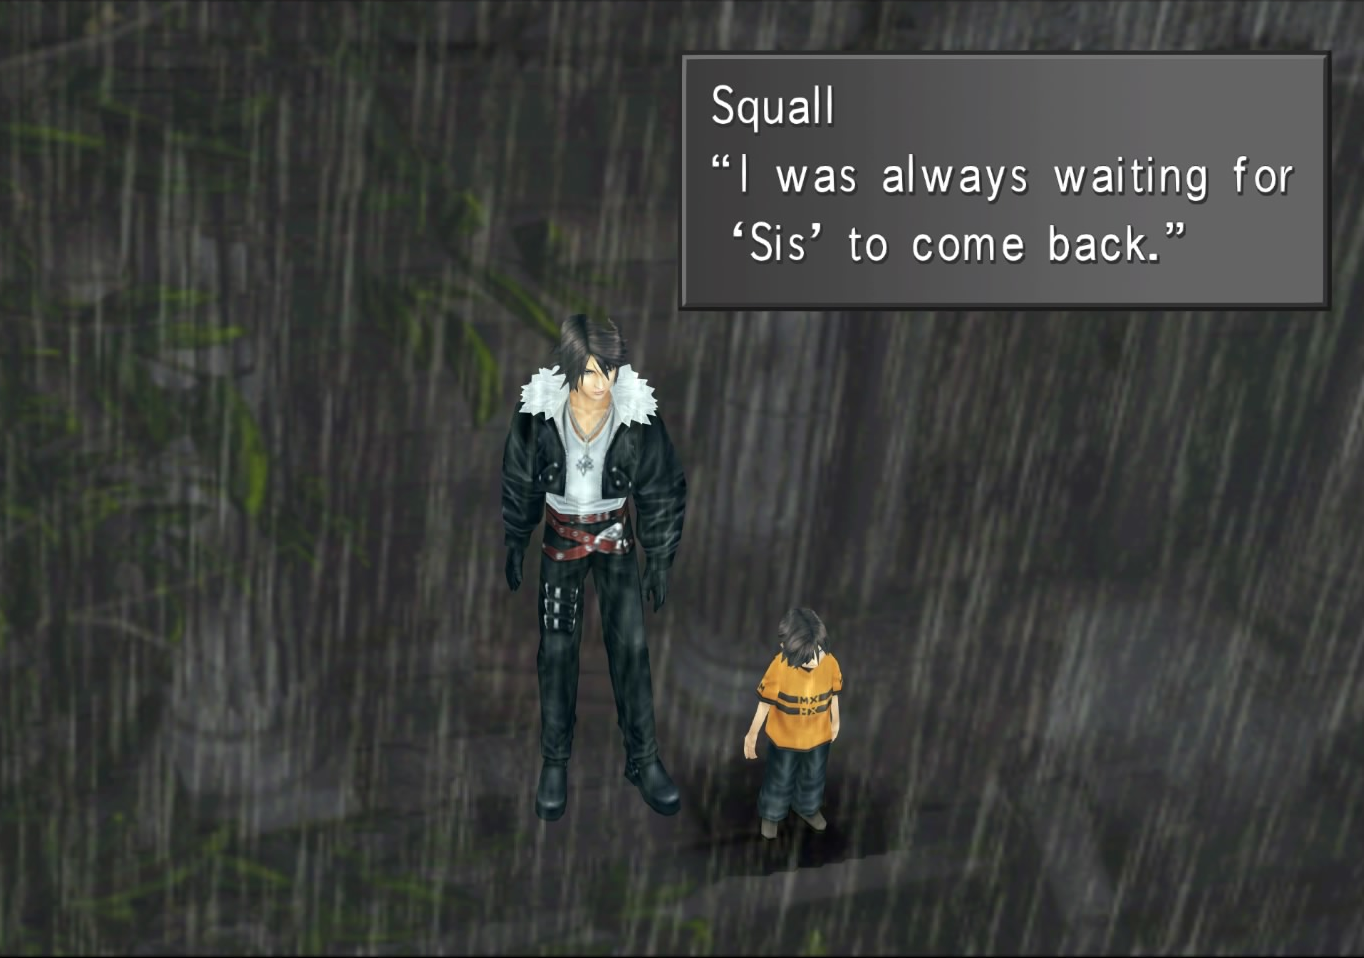 File:TwoSqualls.png